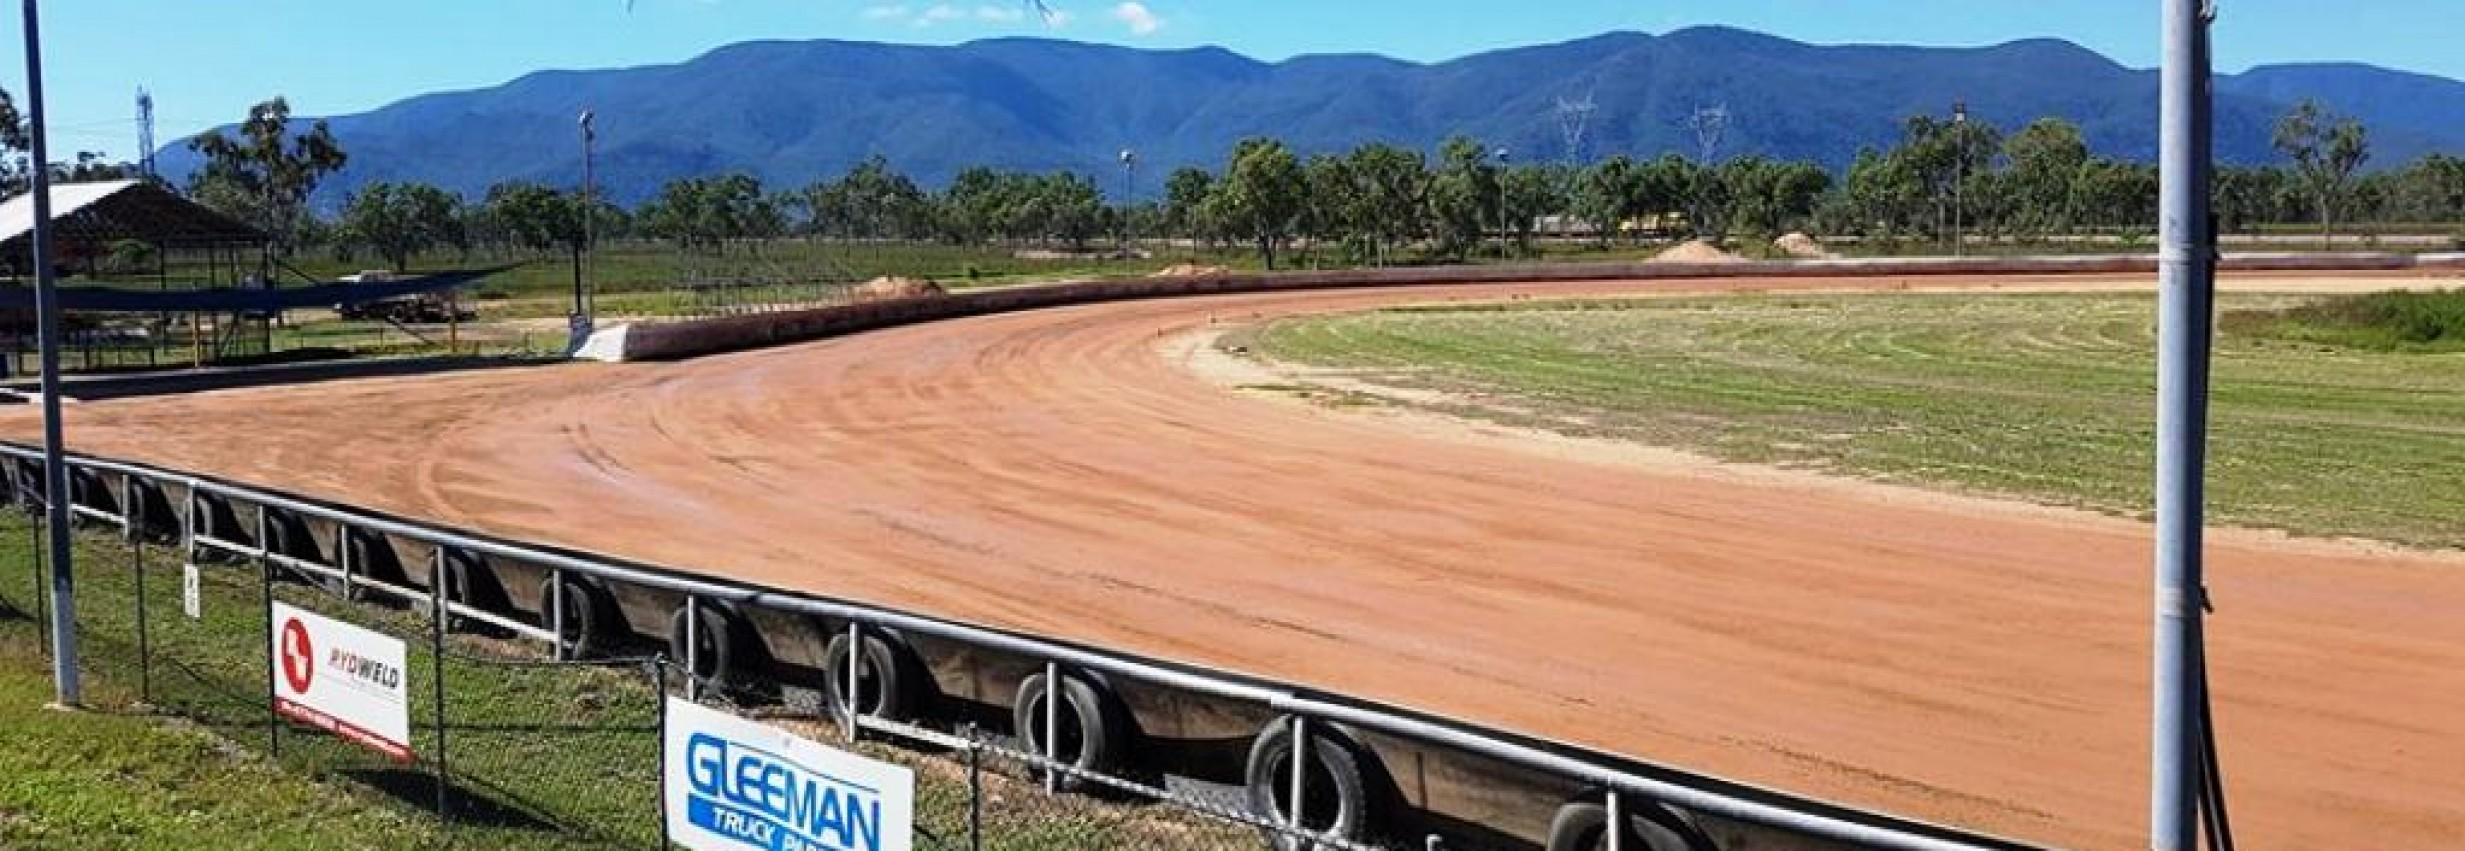 Woodstock Motocross and Dirt Track